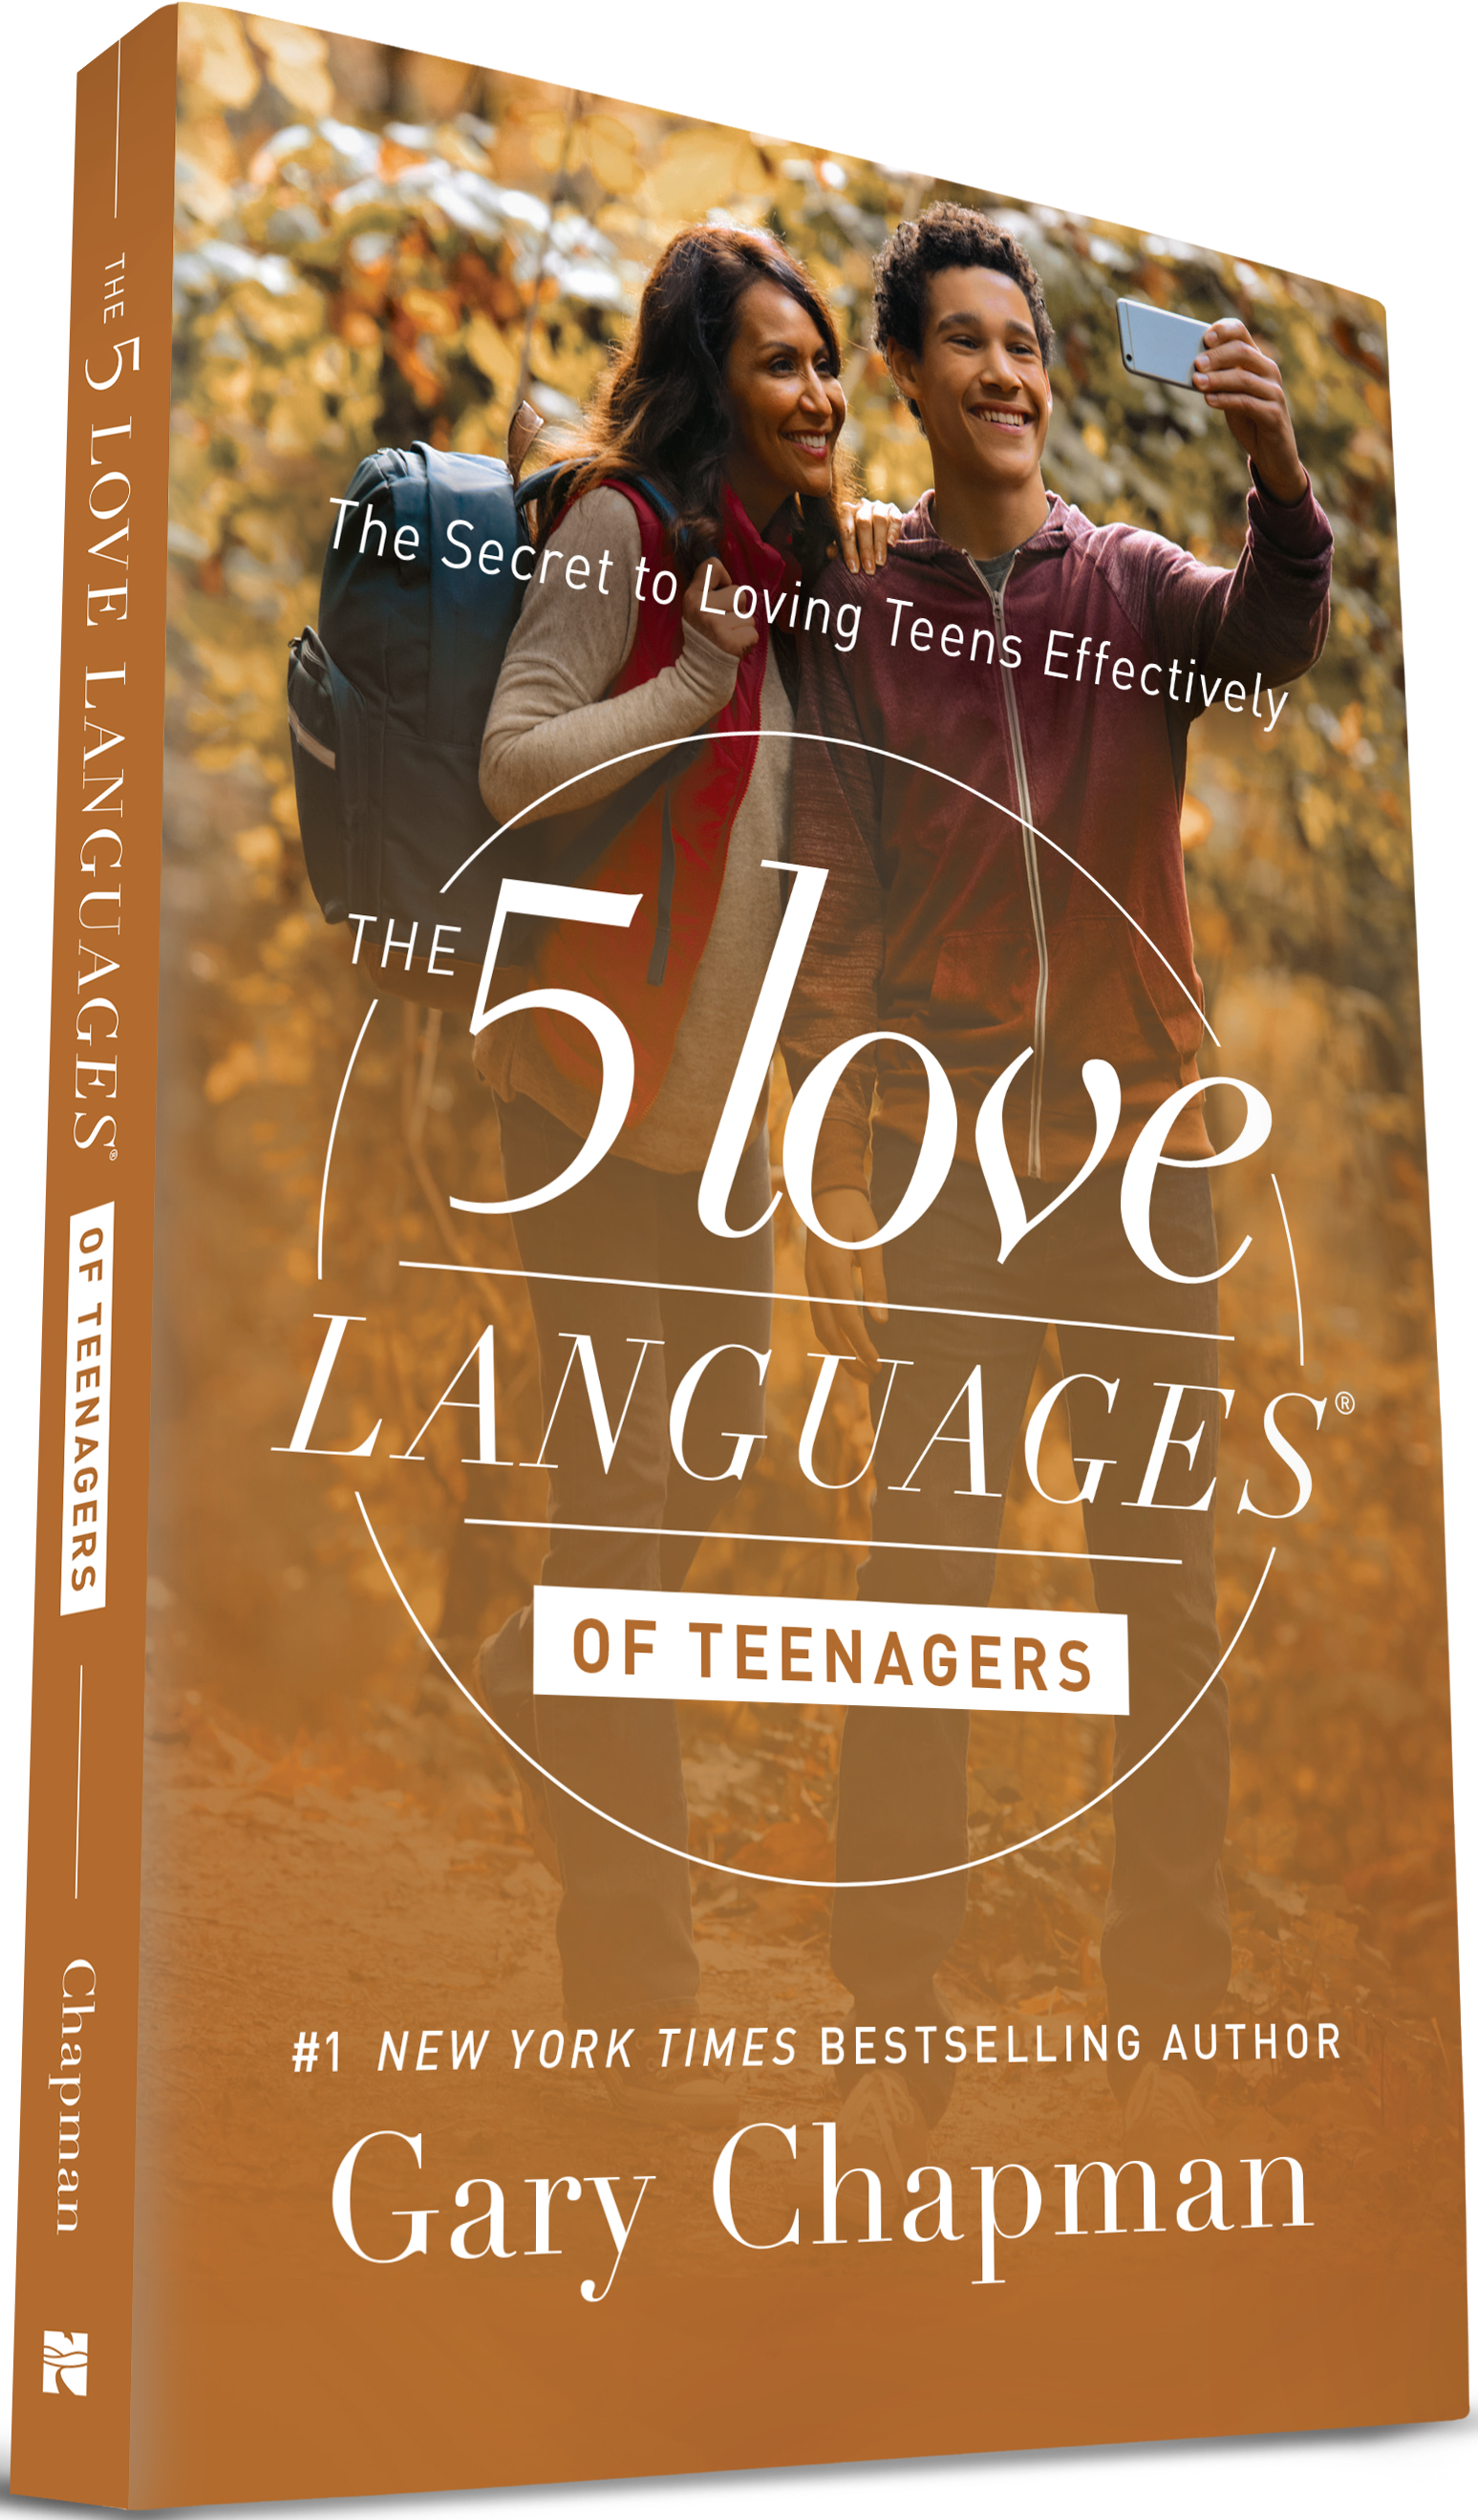 The 5 love languages for men audiobook free download | the 5 love lan….